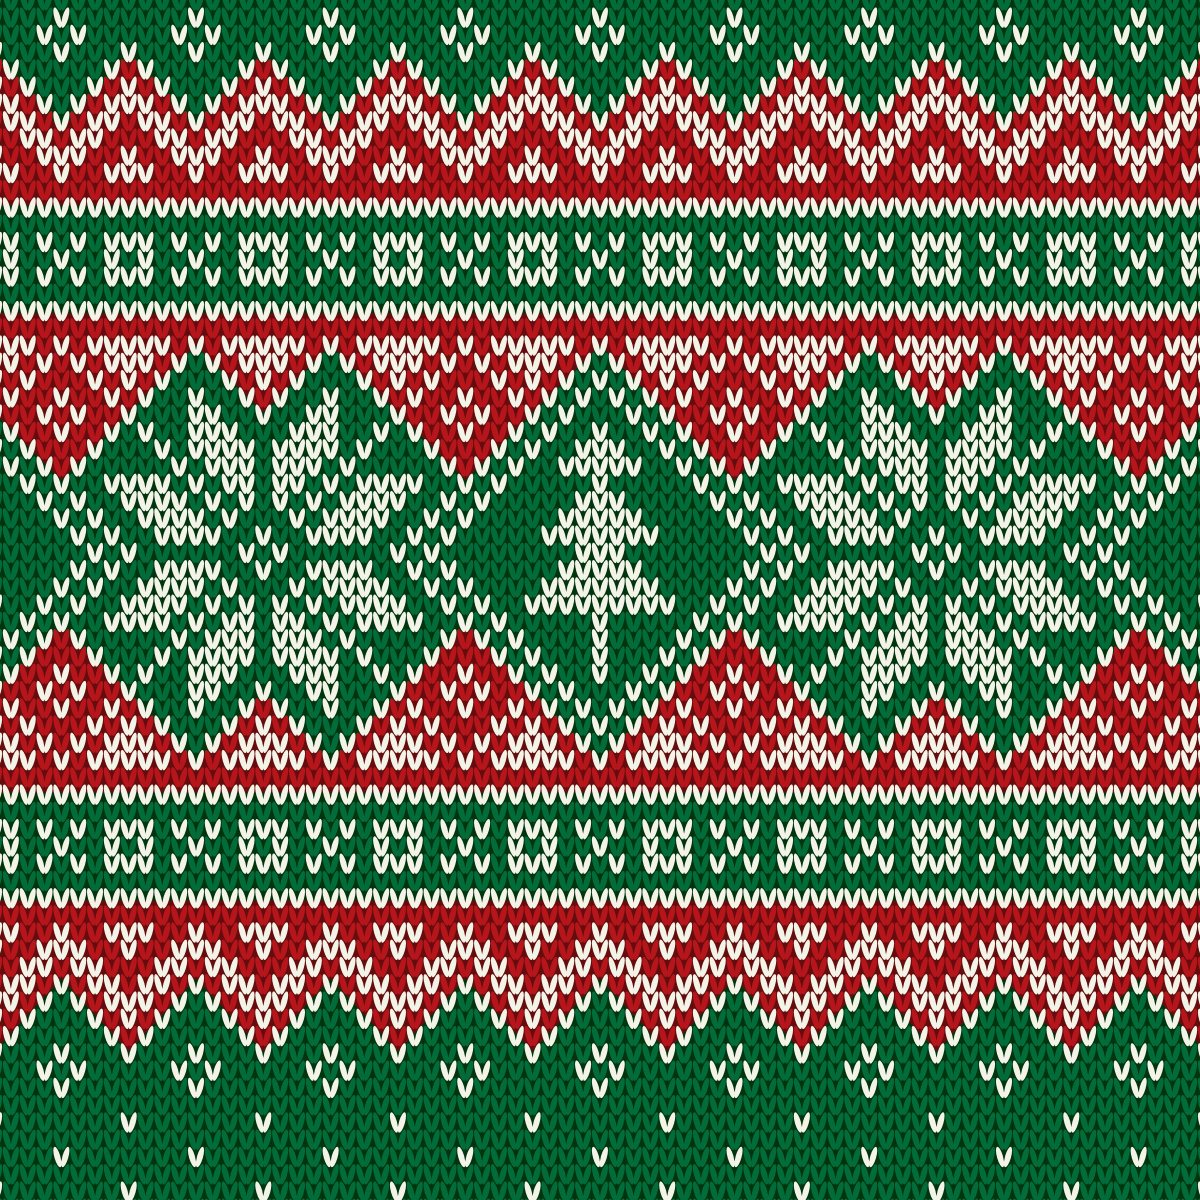 Christmas Sweater Classic SD Exclusive Swiss Army Knife Collection at Swiss Knife Shop